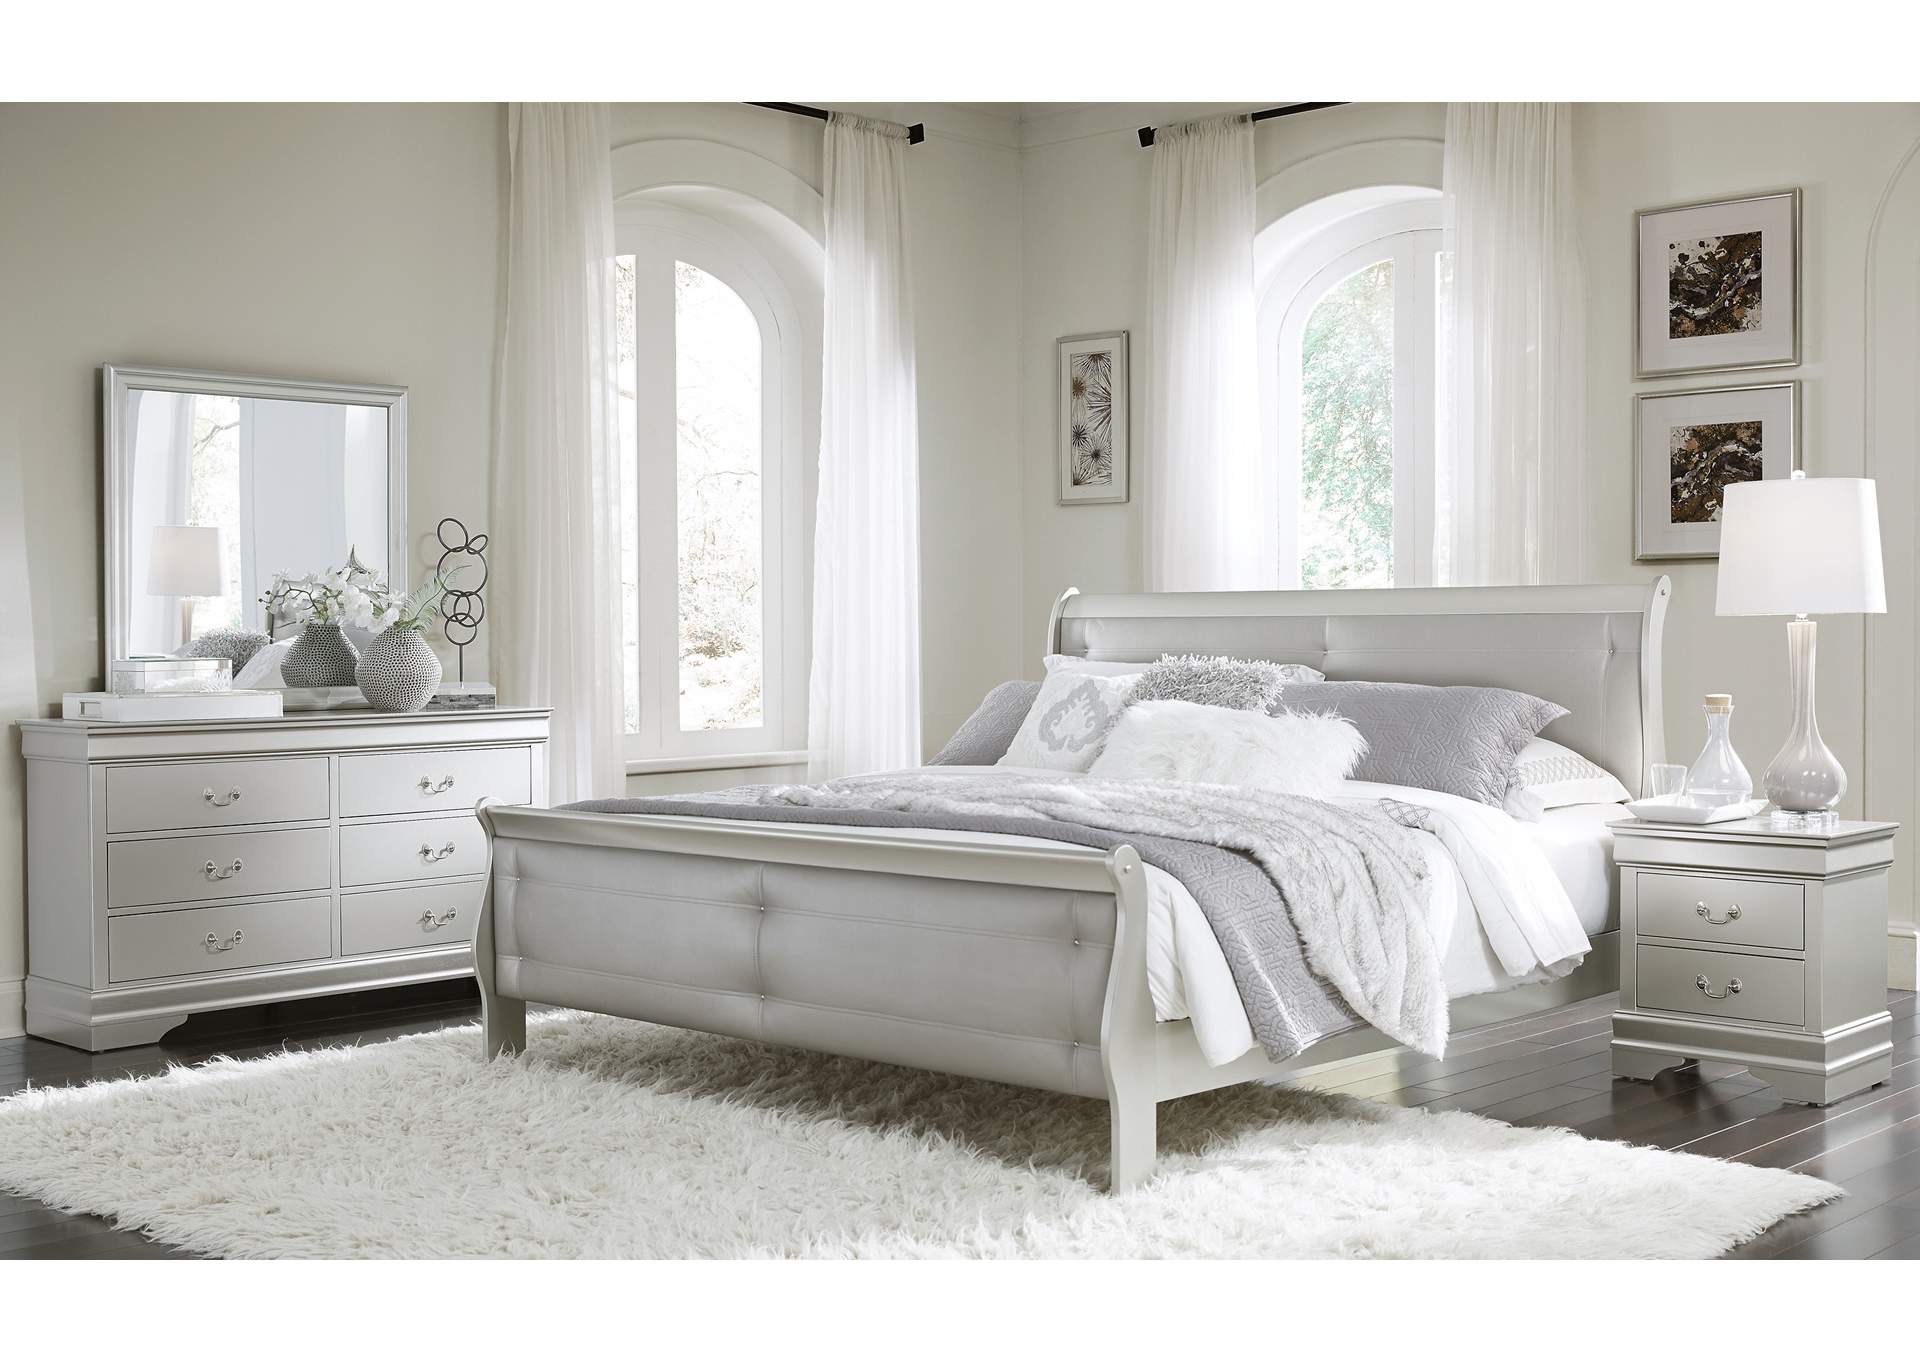 Marley Silver King Bed,Global Furniture USA